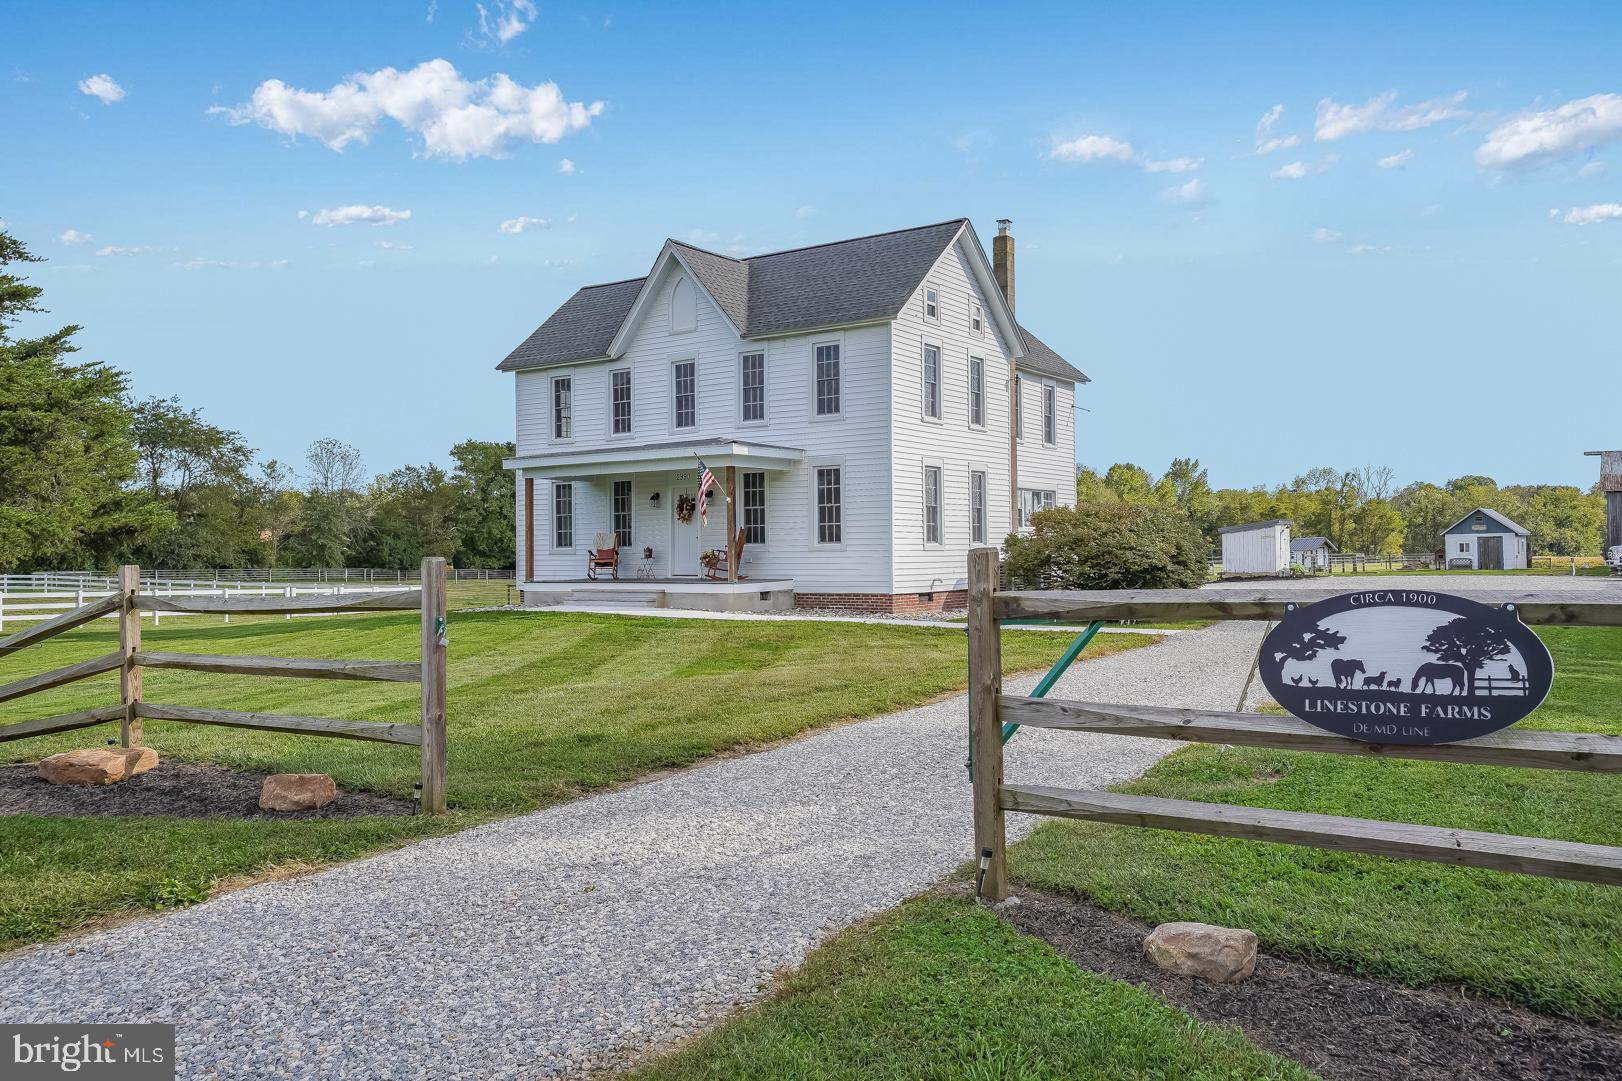 """Rare Opportunity to own """"LineStone Farms""""...  Restored 1900 Farmhouse on 10.6 Acres(10.1 NCC & 1/2 Acre Kent County MD).  To the bones this house has been loved from new electric, new plumbing, spray foam insulated, new drywall, new windows, new roof, 2 HVAC systems with metal insulated duct, to what you can actually see in the photos.  Refinished original hardwood floors downstairs (new hardwood in kitchen) & restored staircase showing off the original layers of paint keep the history alive!  The kitchen has seen a high end remodel with 42"""" soft close cabinetry complete with crown and base mouldings.  Hammered copper farmhouse sinks is just one of many custom touches.  First floor master suite with custom full bath and walk-in closet.  Outside is the 4 car detached man cave and approx 5 acres of fenced in pastures with multiple run-in sheds/outbuildings.  Riding trails in DE and MD all around.   Approximately 3 Acres of wooded land in the rear adjoining farm, MD State Lands, and a stream bringing the game right to your stand.  Standard gravity septic design is permitted and will be installed prior to closing.  So much potential...a roadside produce stand, horse boarding, etc.  Just an amazing piece of property...  Owner is a licensed real estate broker."""